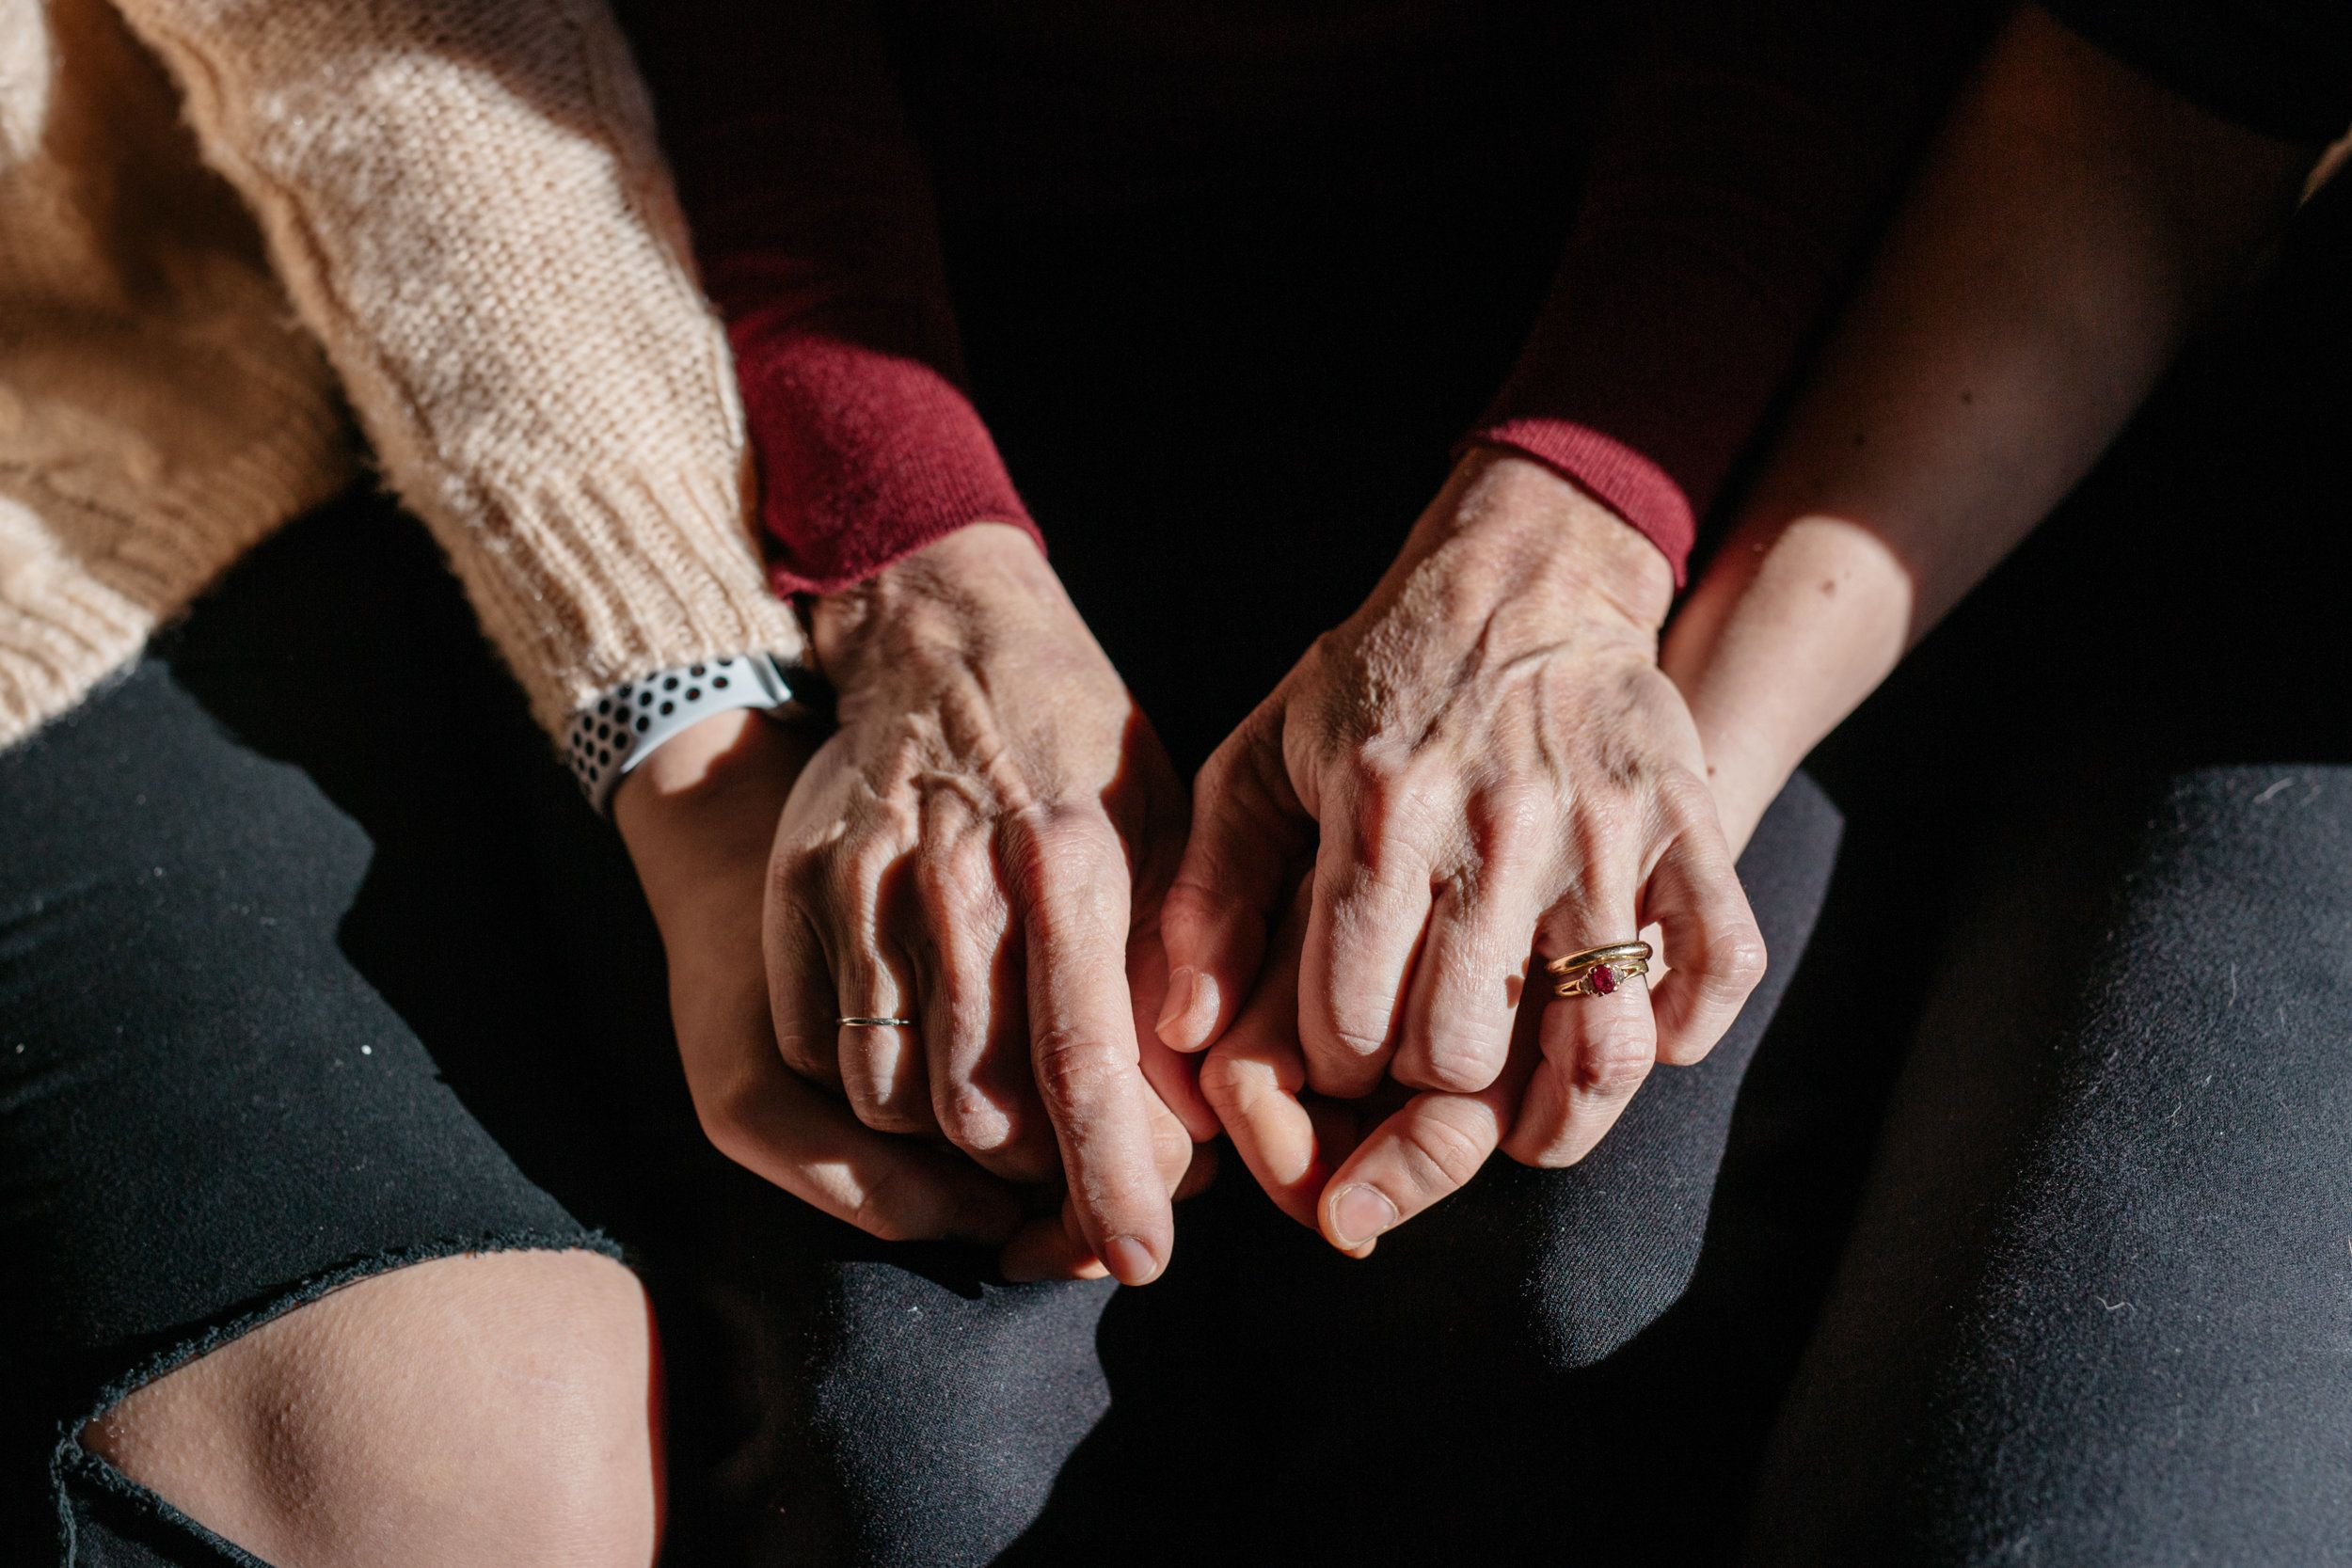 Suzanne Thomashow, center, holds the hands of her daughters Amanda, right, and Jessica, left.